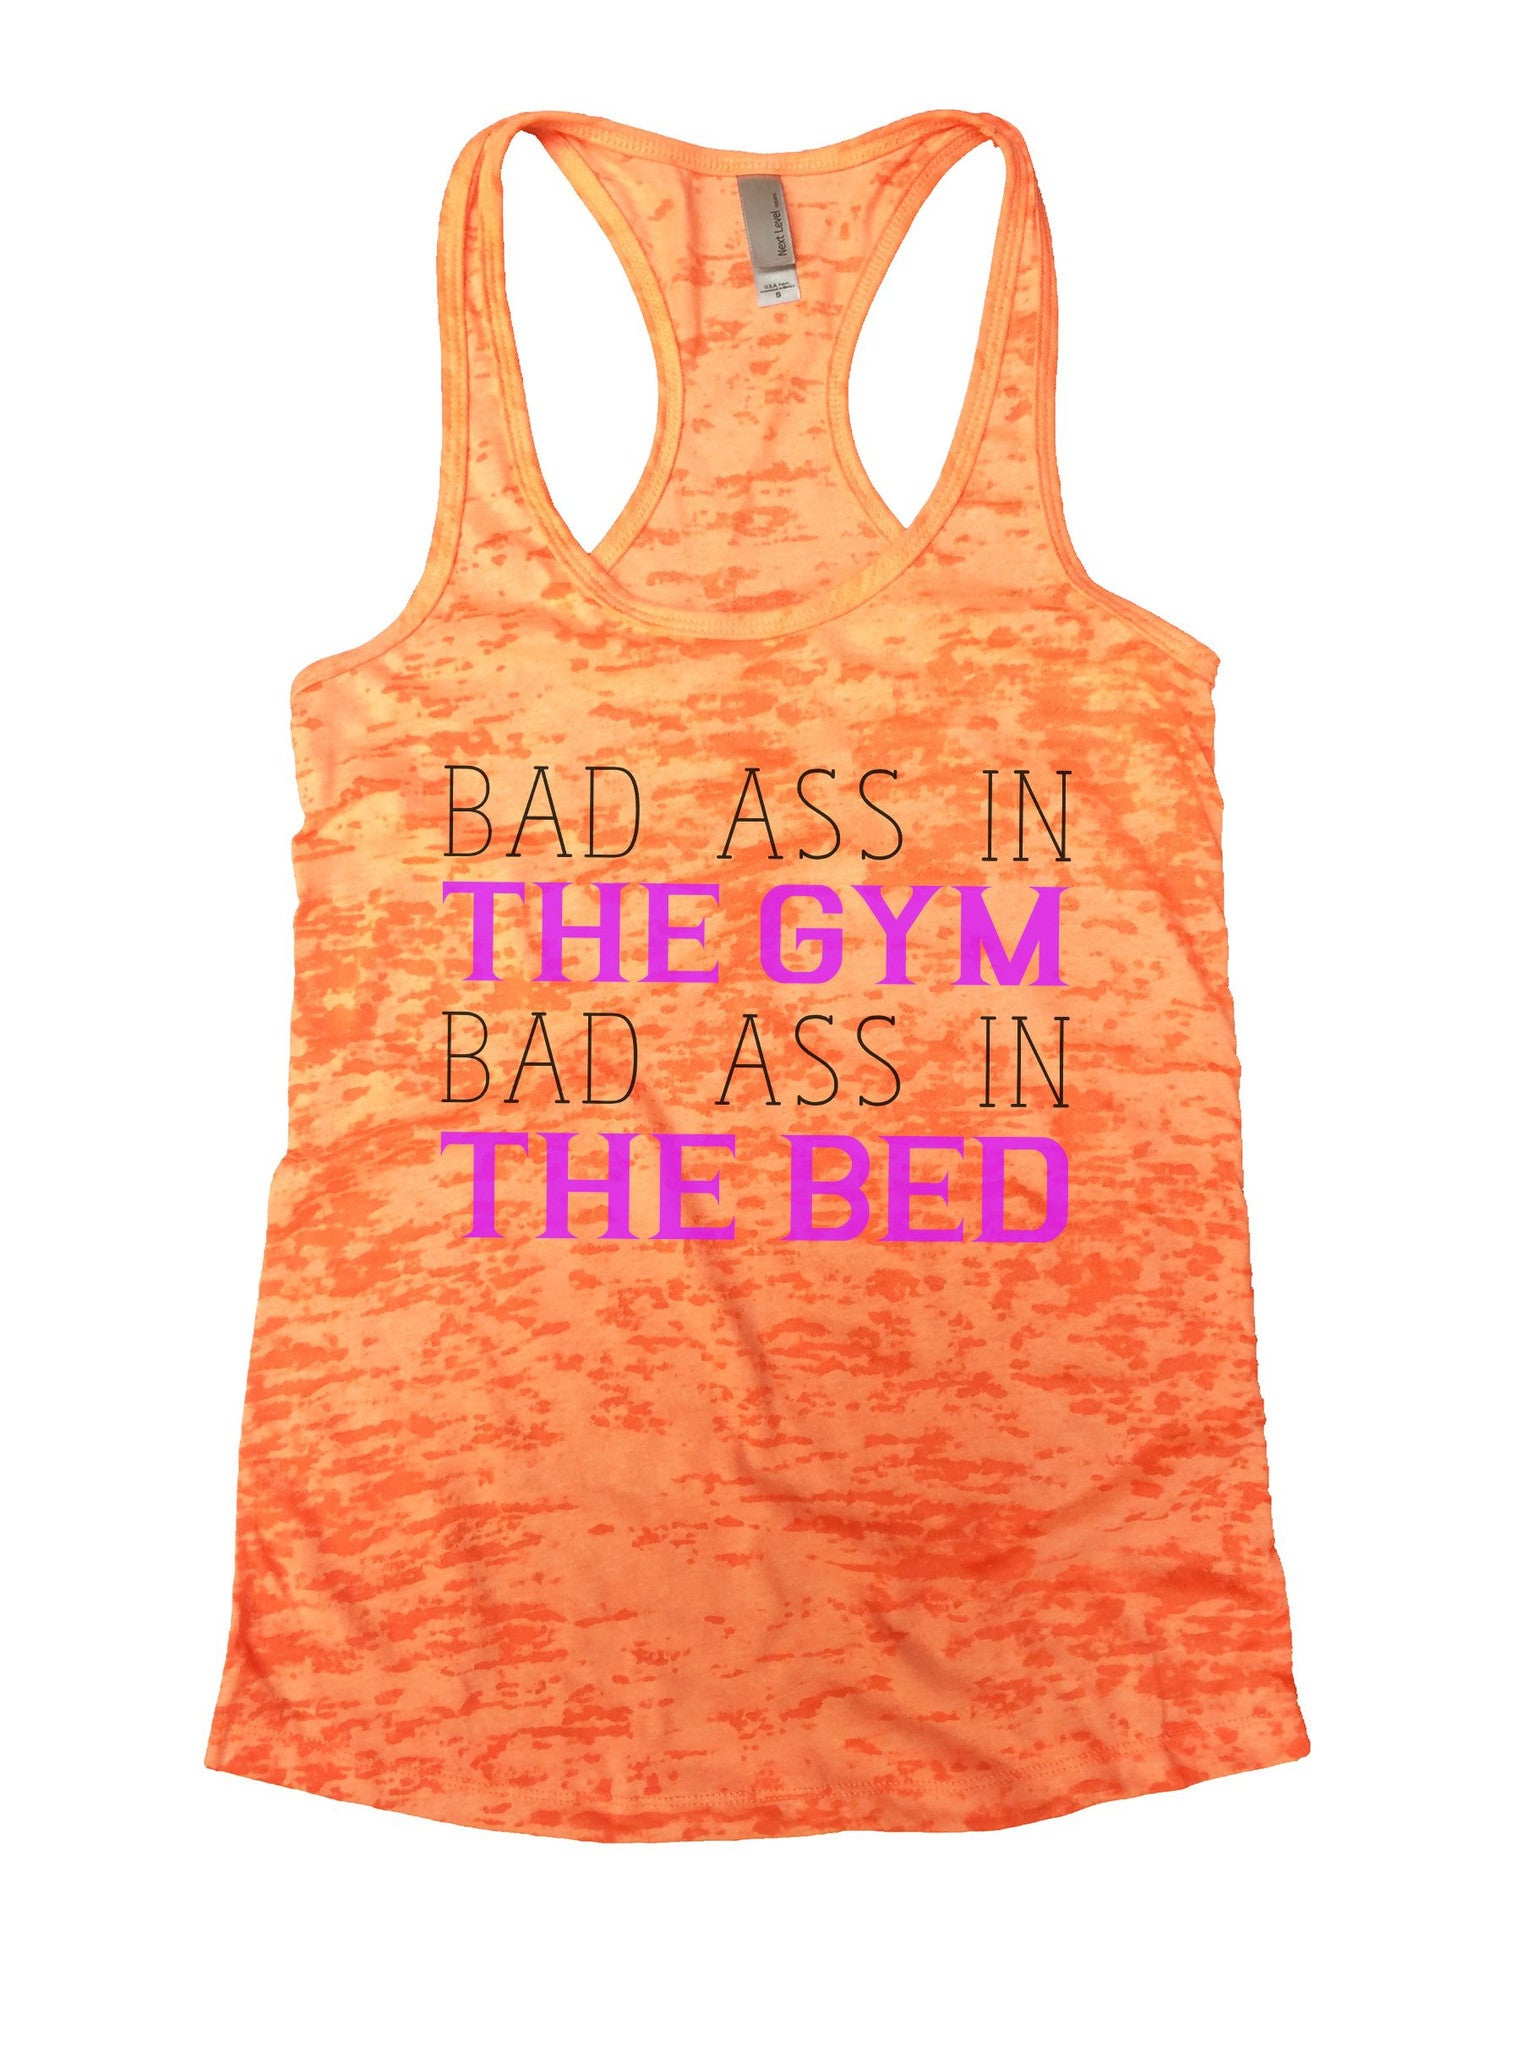 Bad Ass In The Gym Bad Ass In The Bed Burnout Tank Top By BurnoutTankTops.com - 864 - Funny Shirts Tank Tops Burnouts and Triblends  - 3